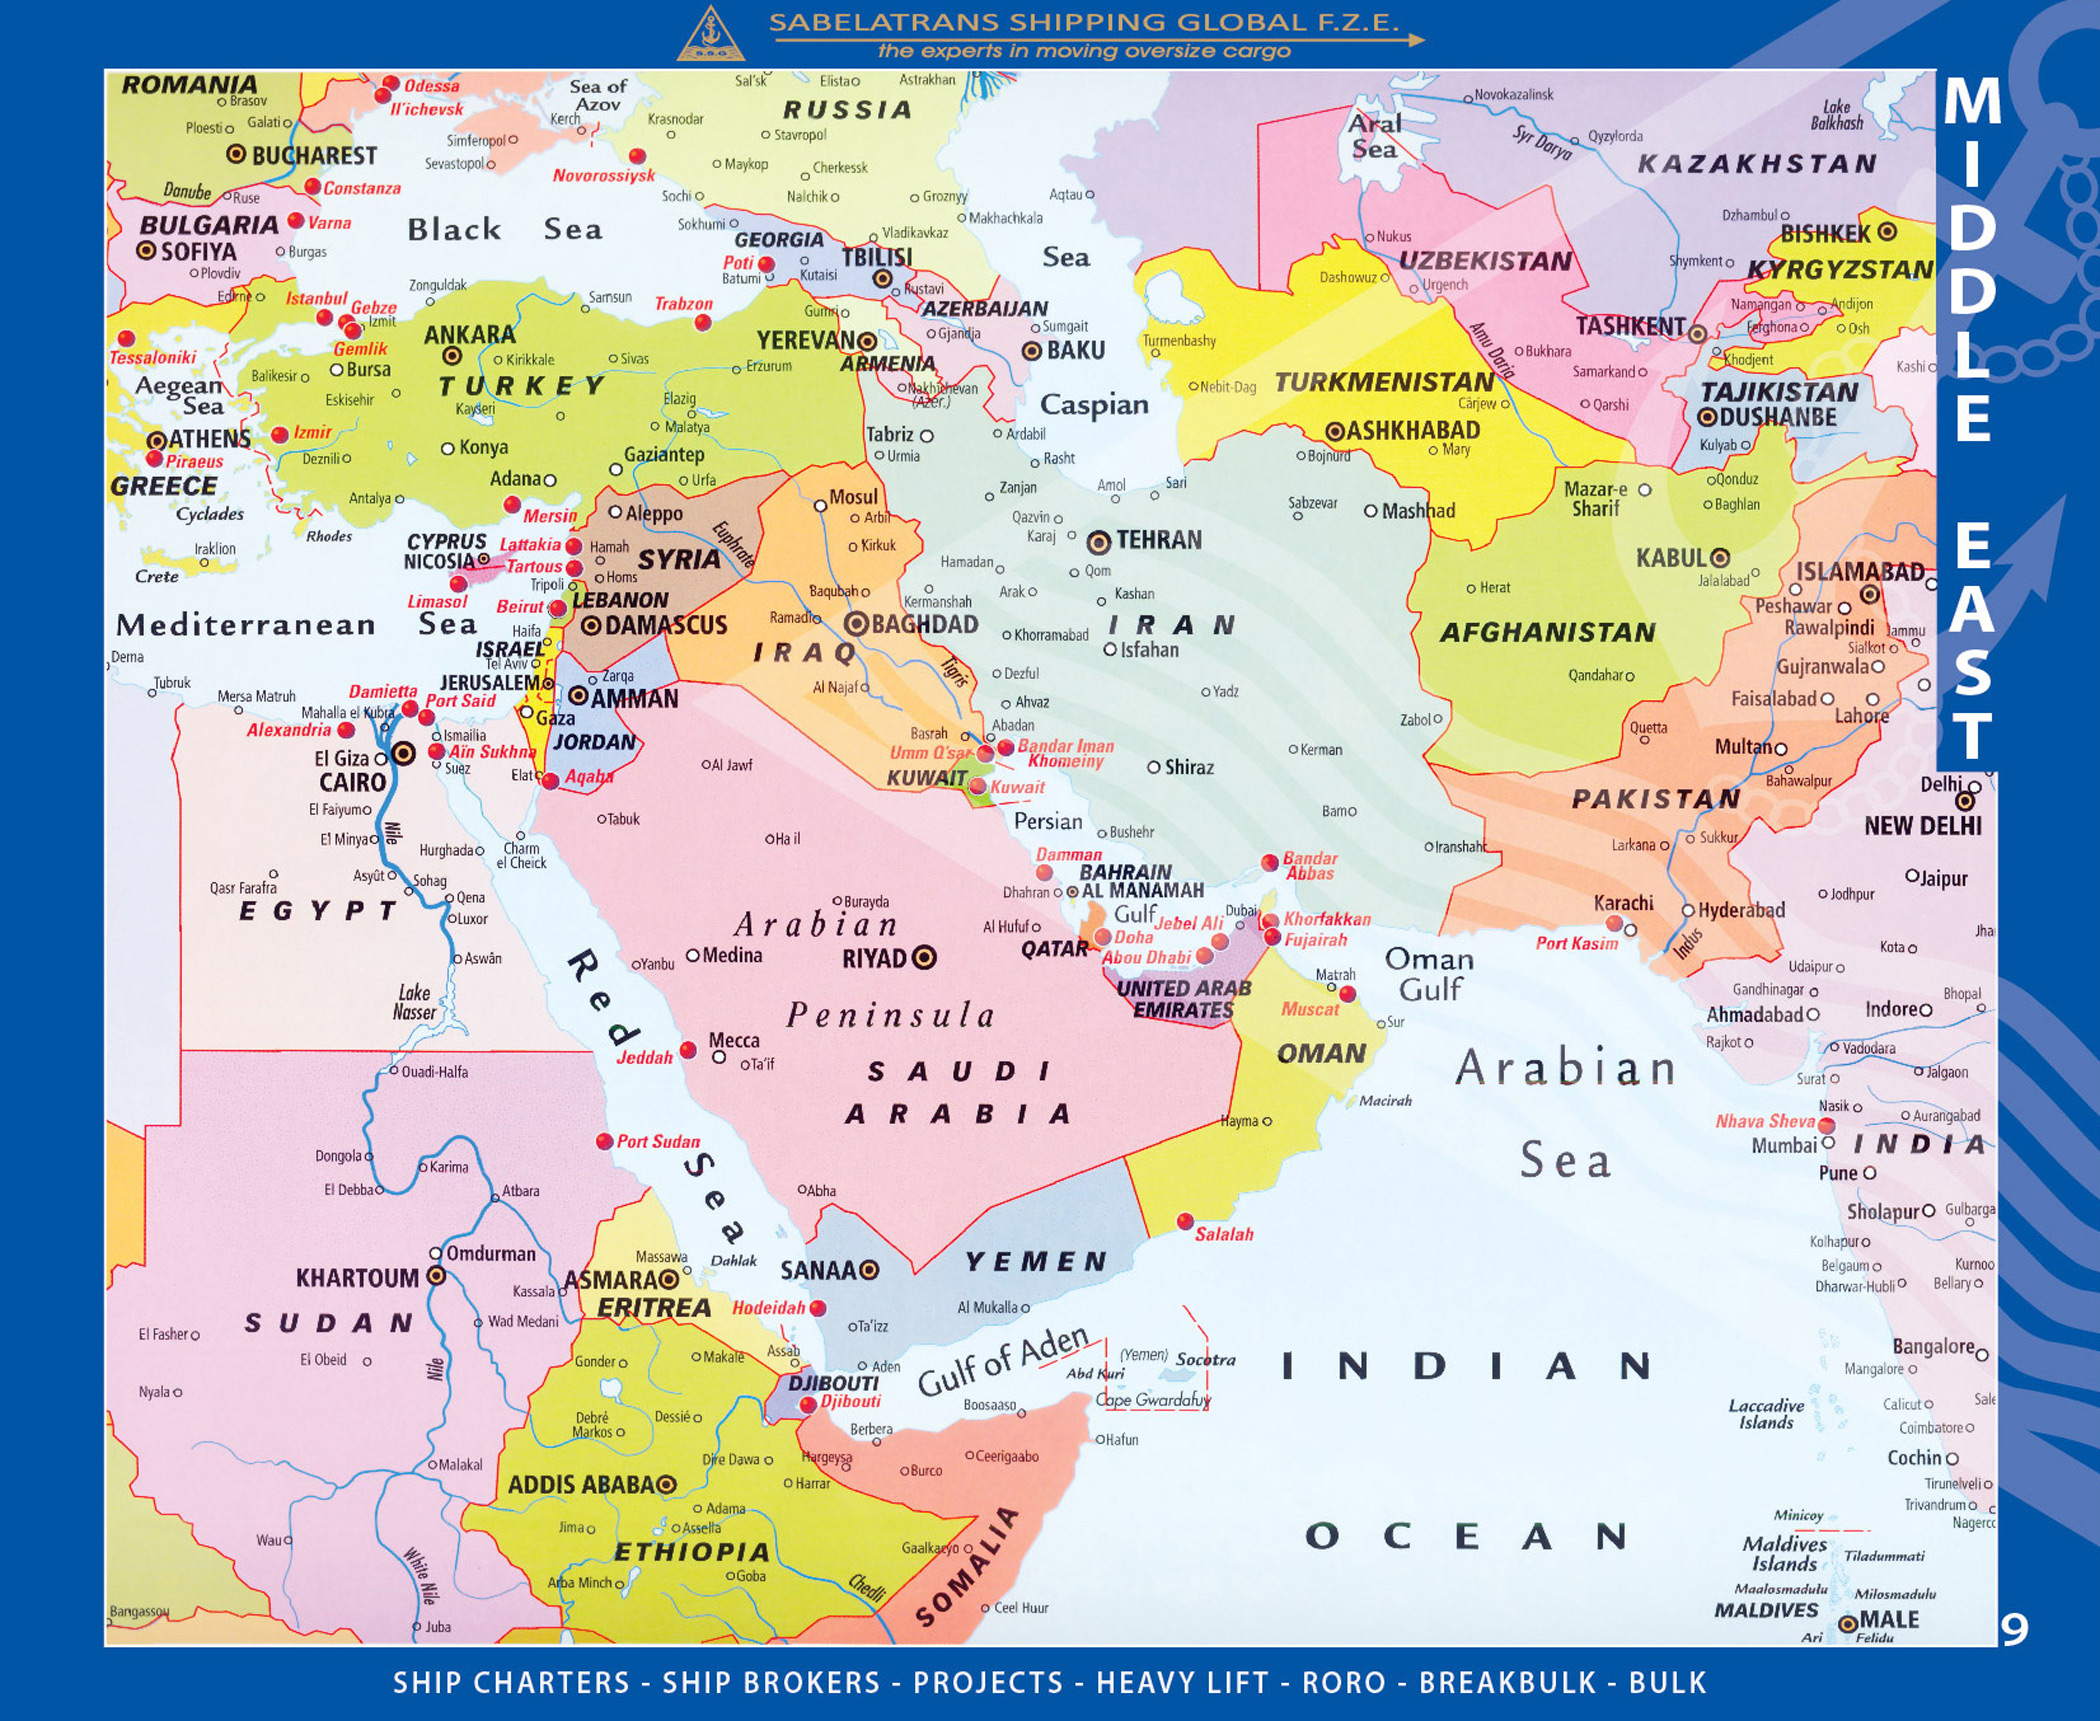 Welcome to sabelatrans shipping global fze world atlas map gumiabroncs Choice Image